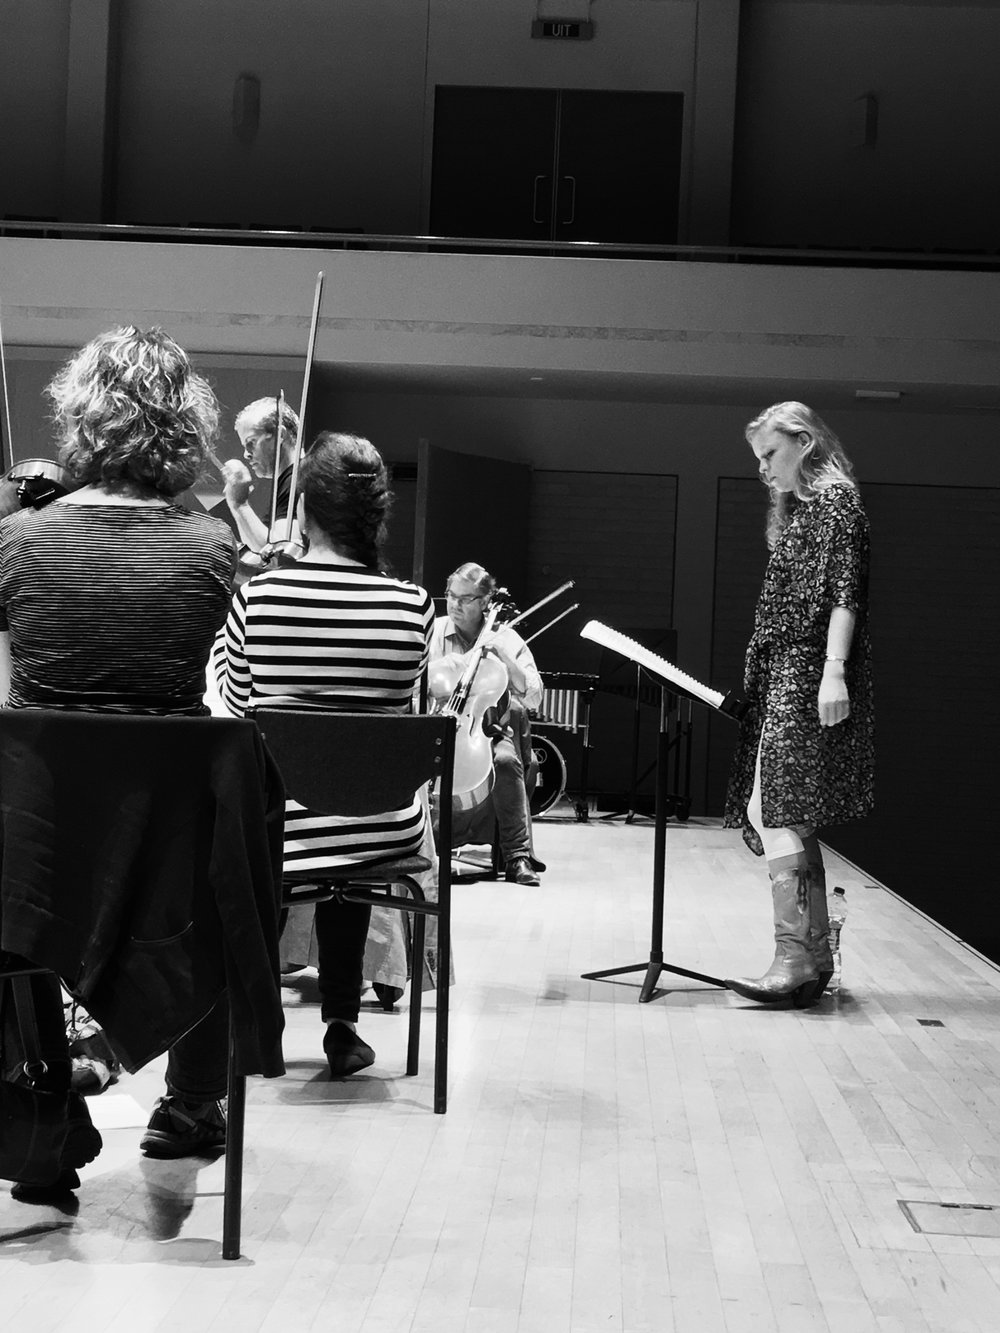 Image: Charody in rehearsal with The Netherlands Symphony Orchestra in June 2016.